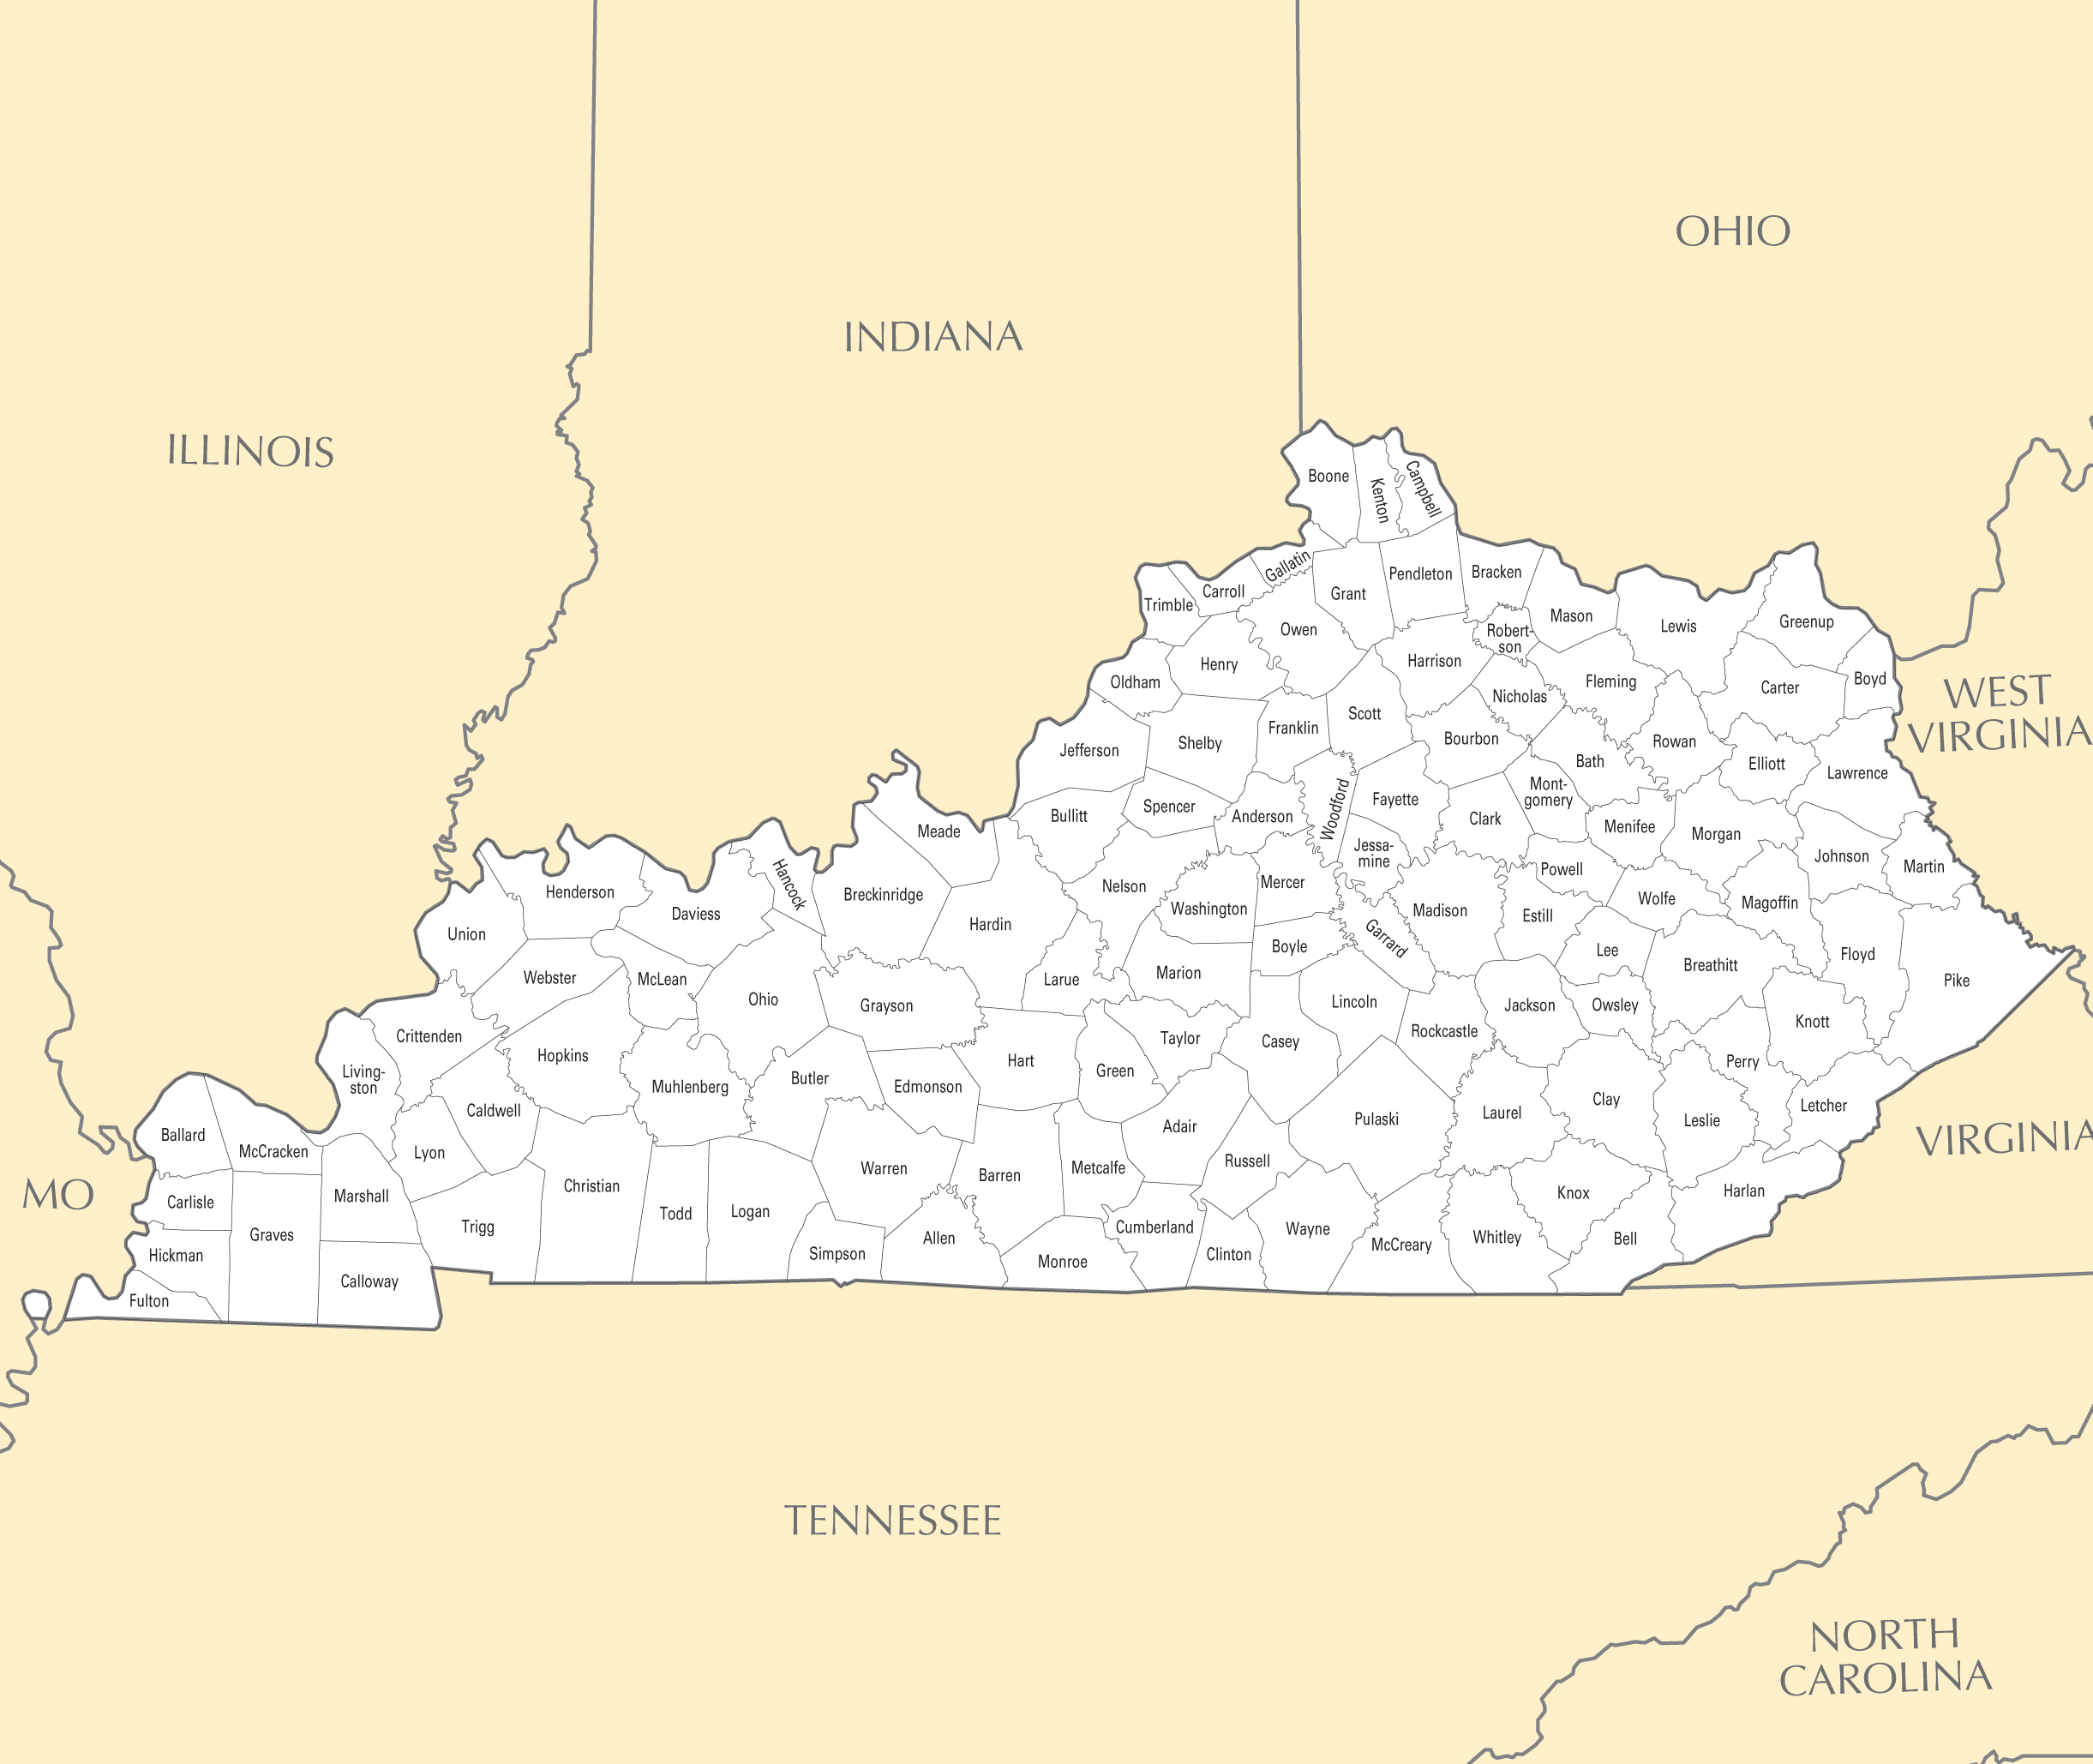 Kentucky County Map • Mapsof.net